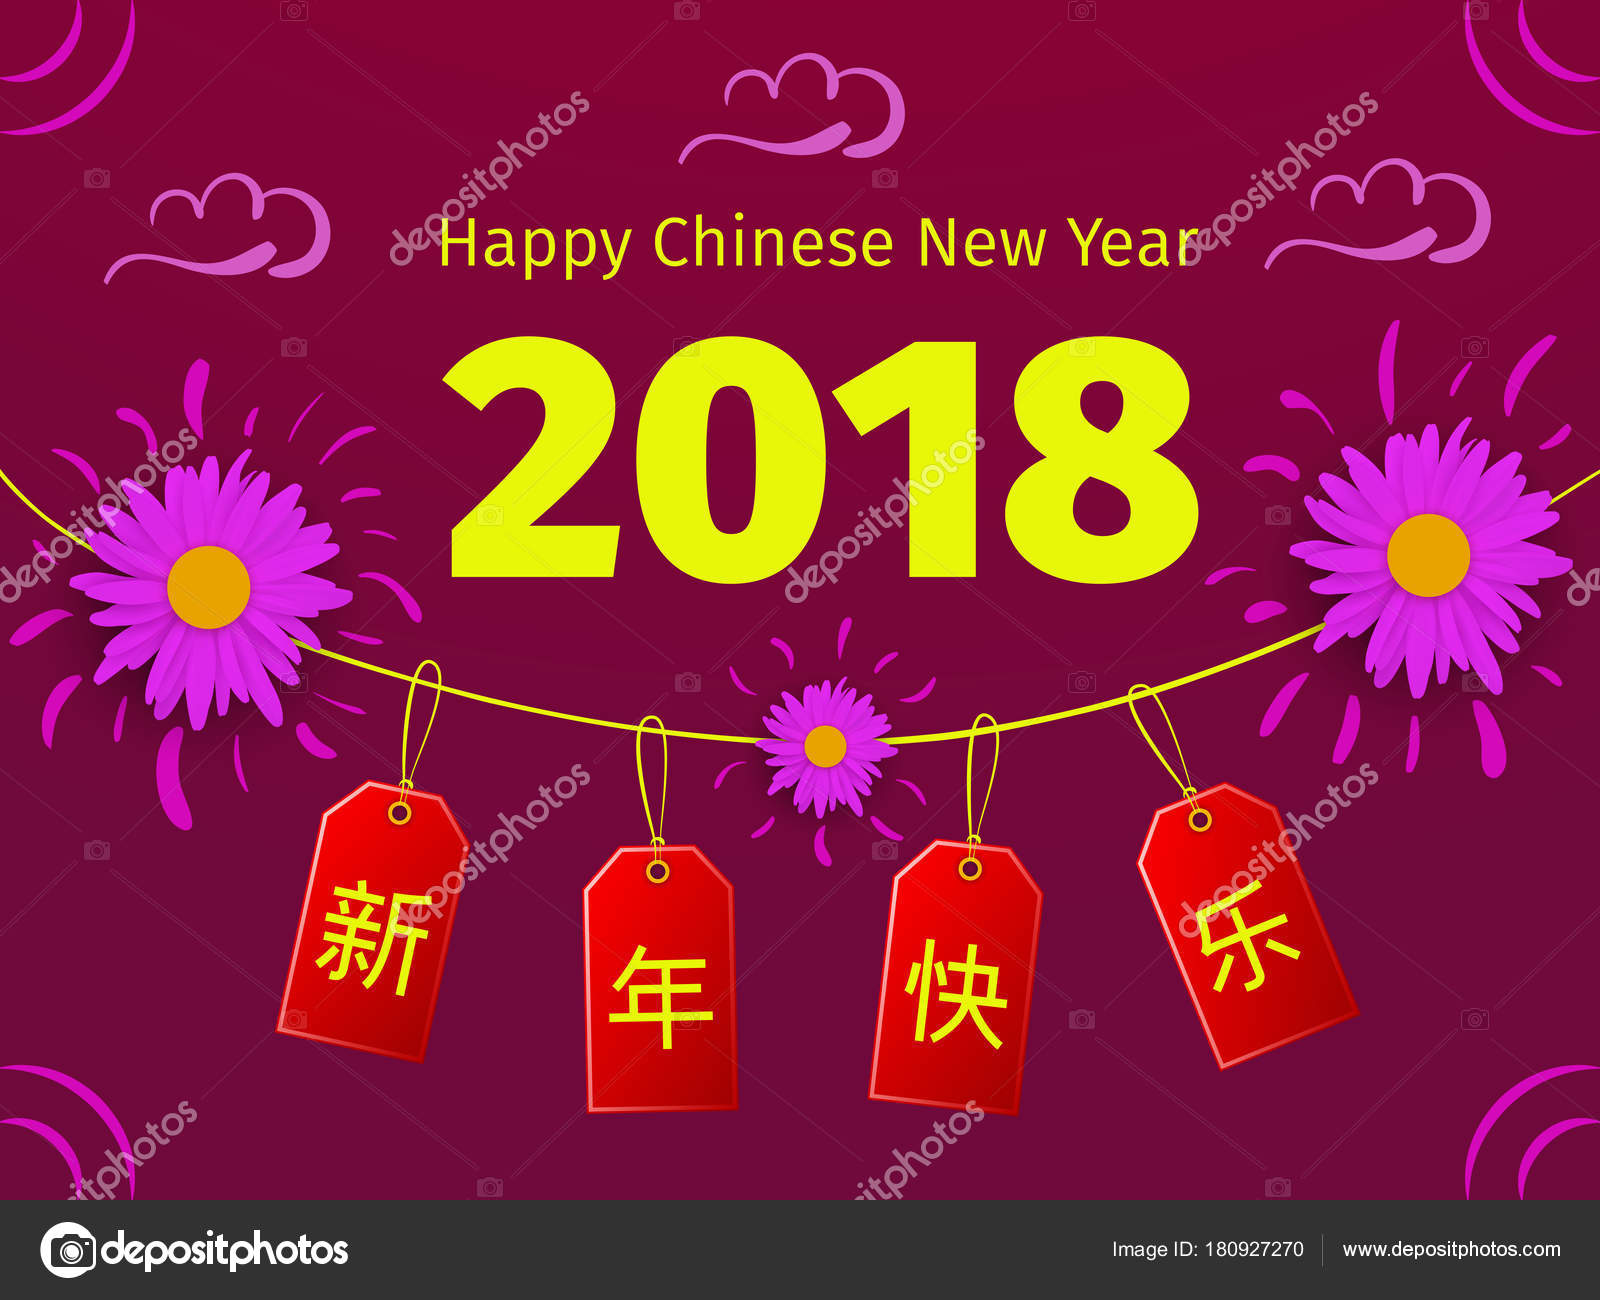 Chinese New Year Greeting Card With Tags And Flowers Stock Vector